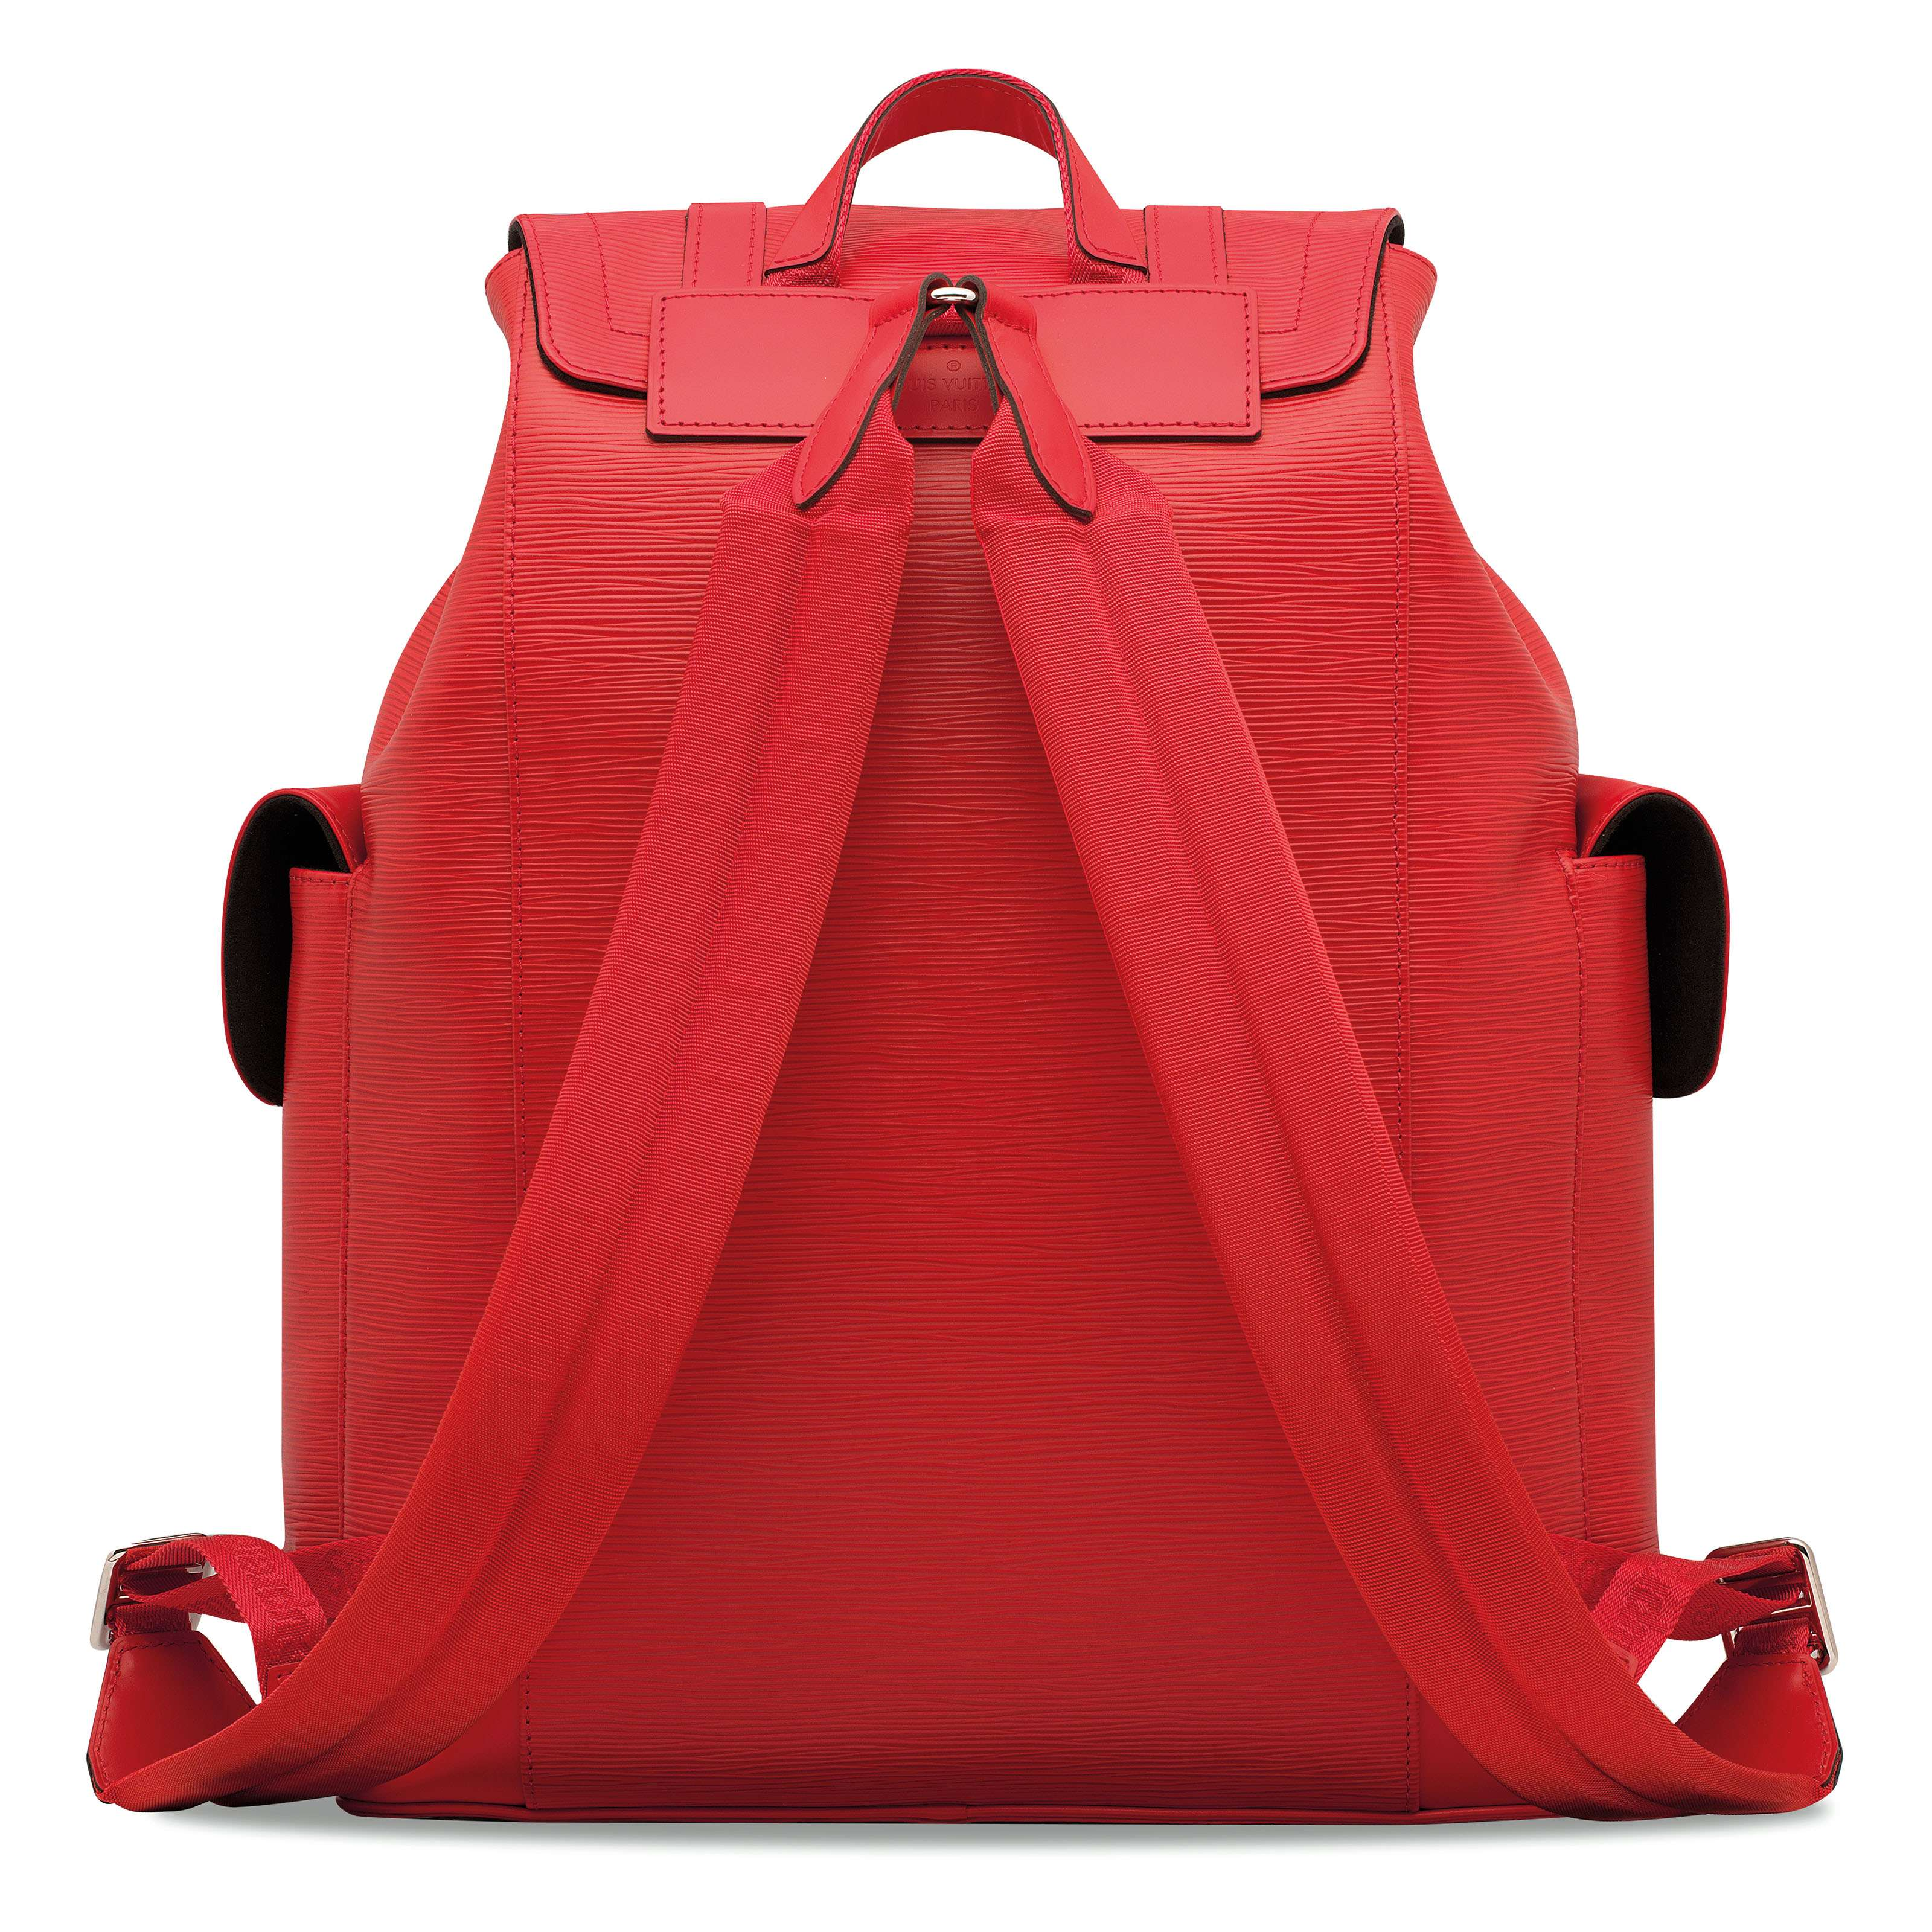 7cb8018b89a3 A LIMITED EDITION RED   WHITE EPI LEATHER CHRISTOPHER BACKPACK WITH ...